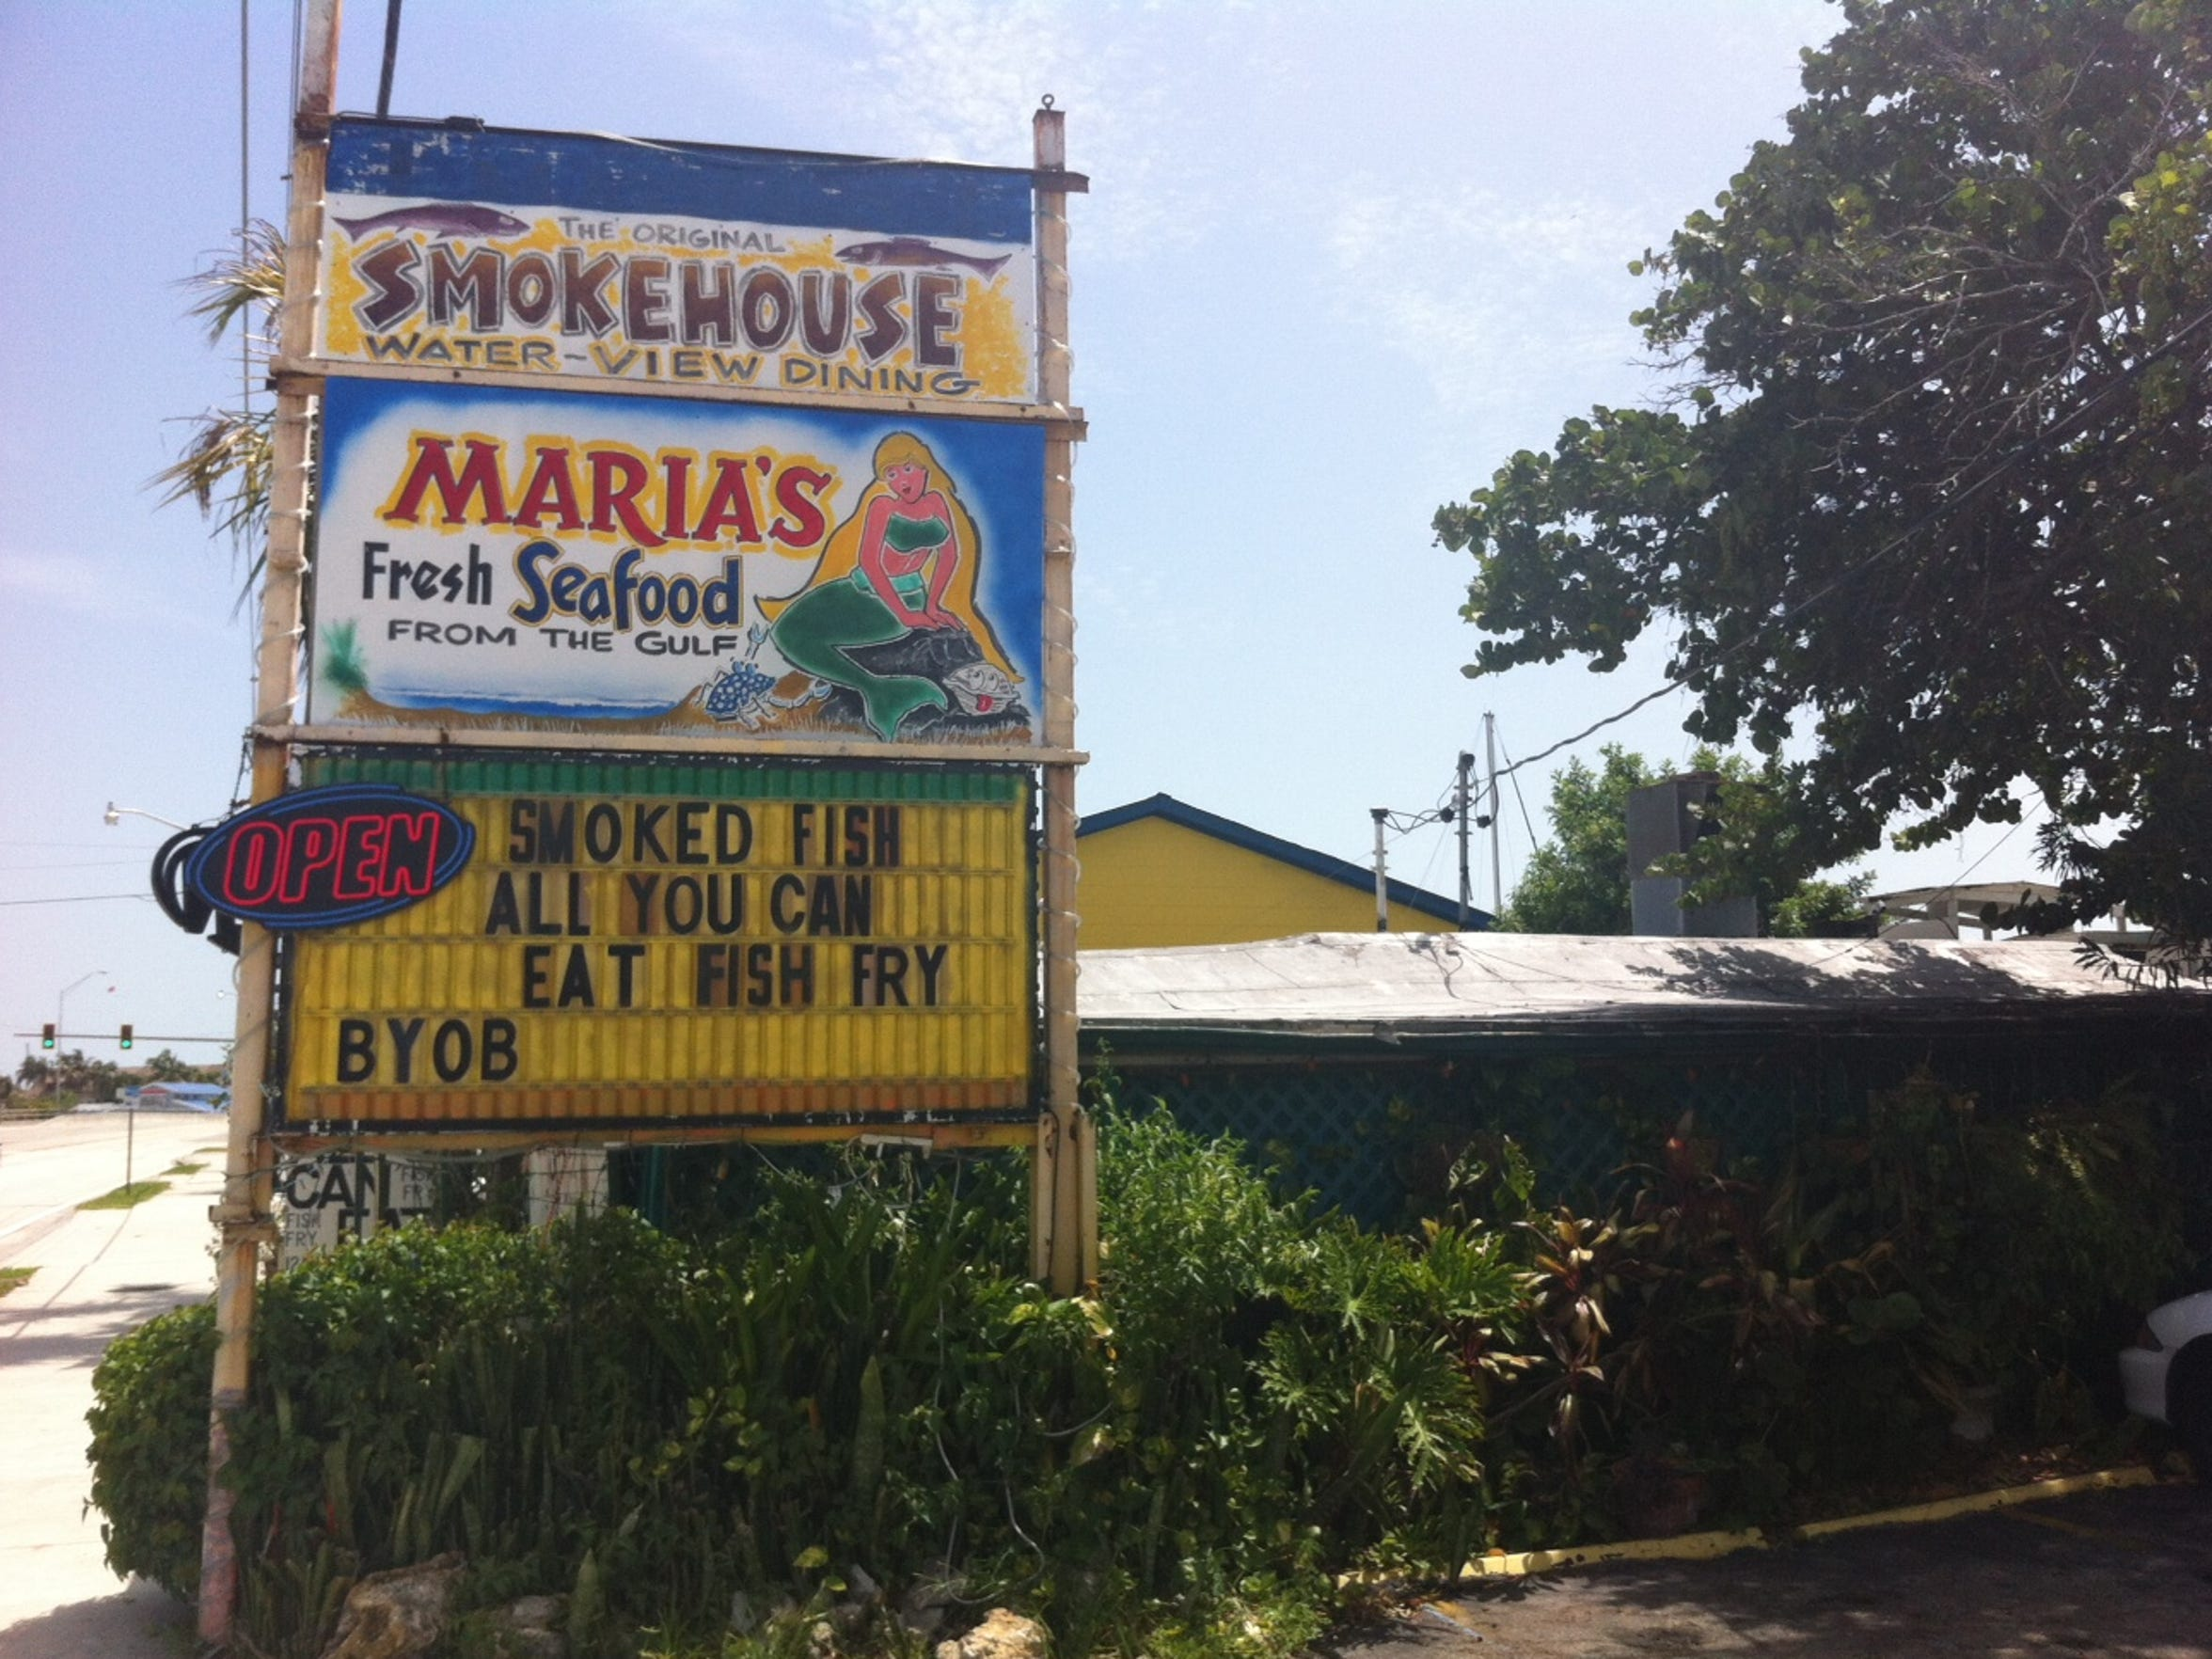 Maria's Smokehouse